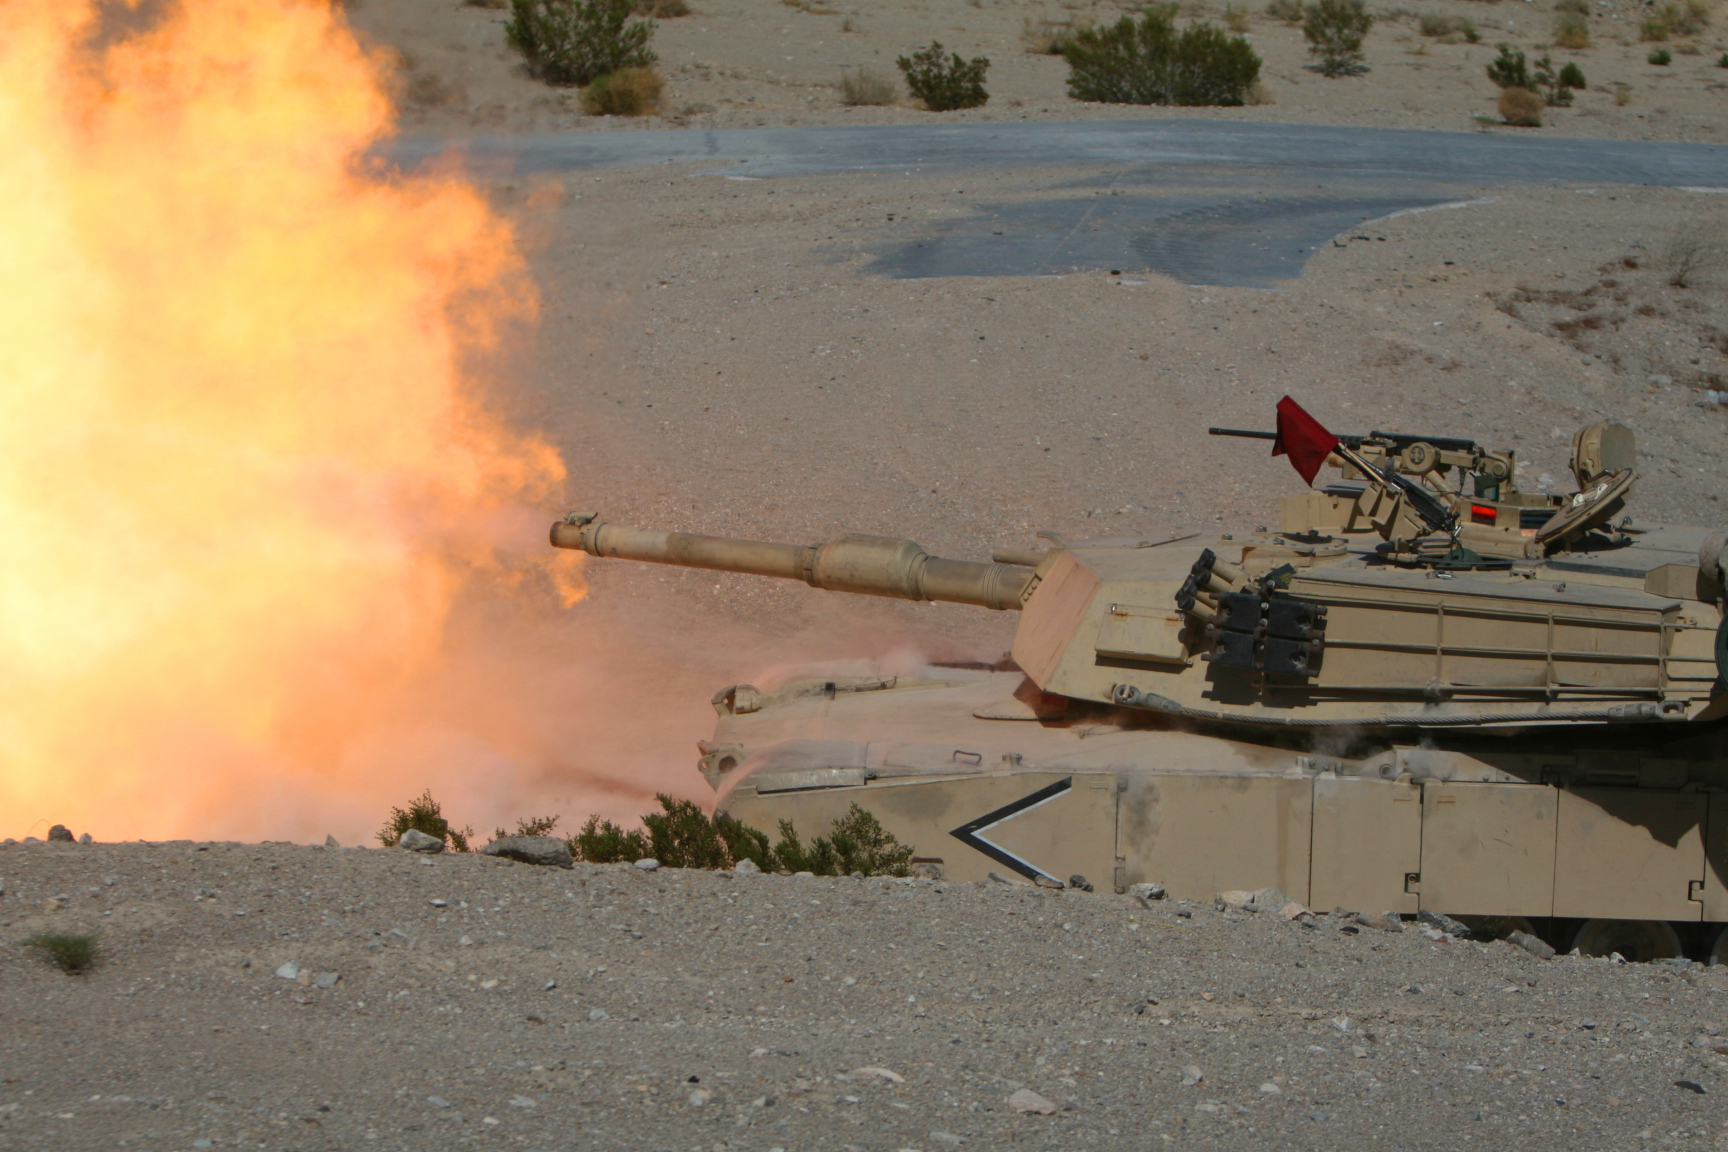 Back in the Saddle: 1st Tank Marines get back on their machines